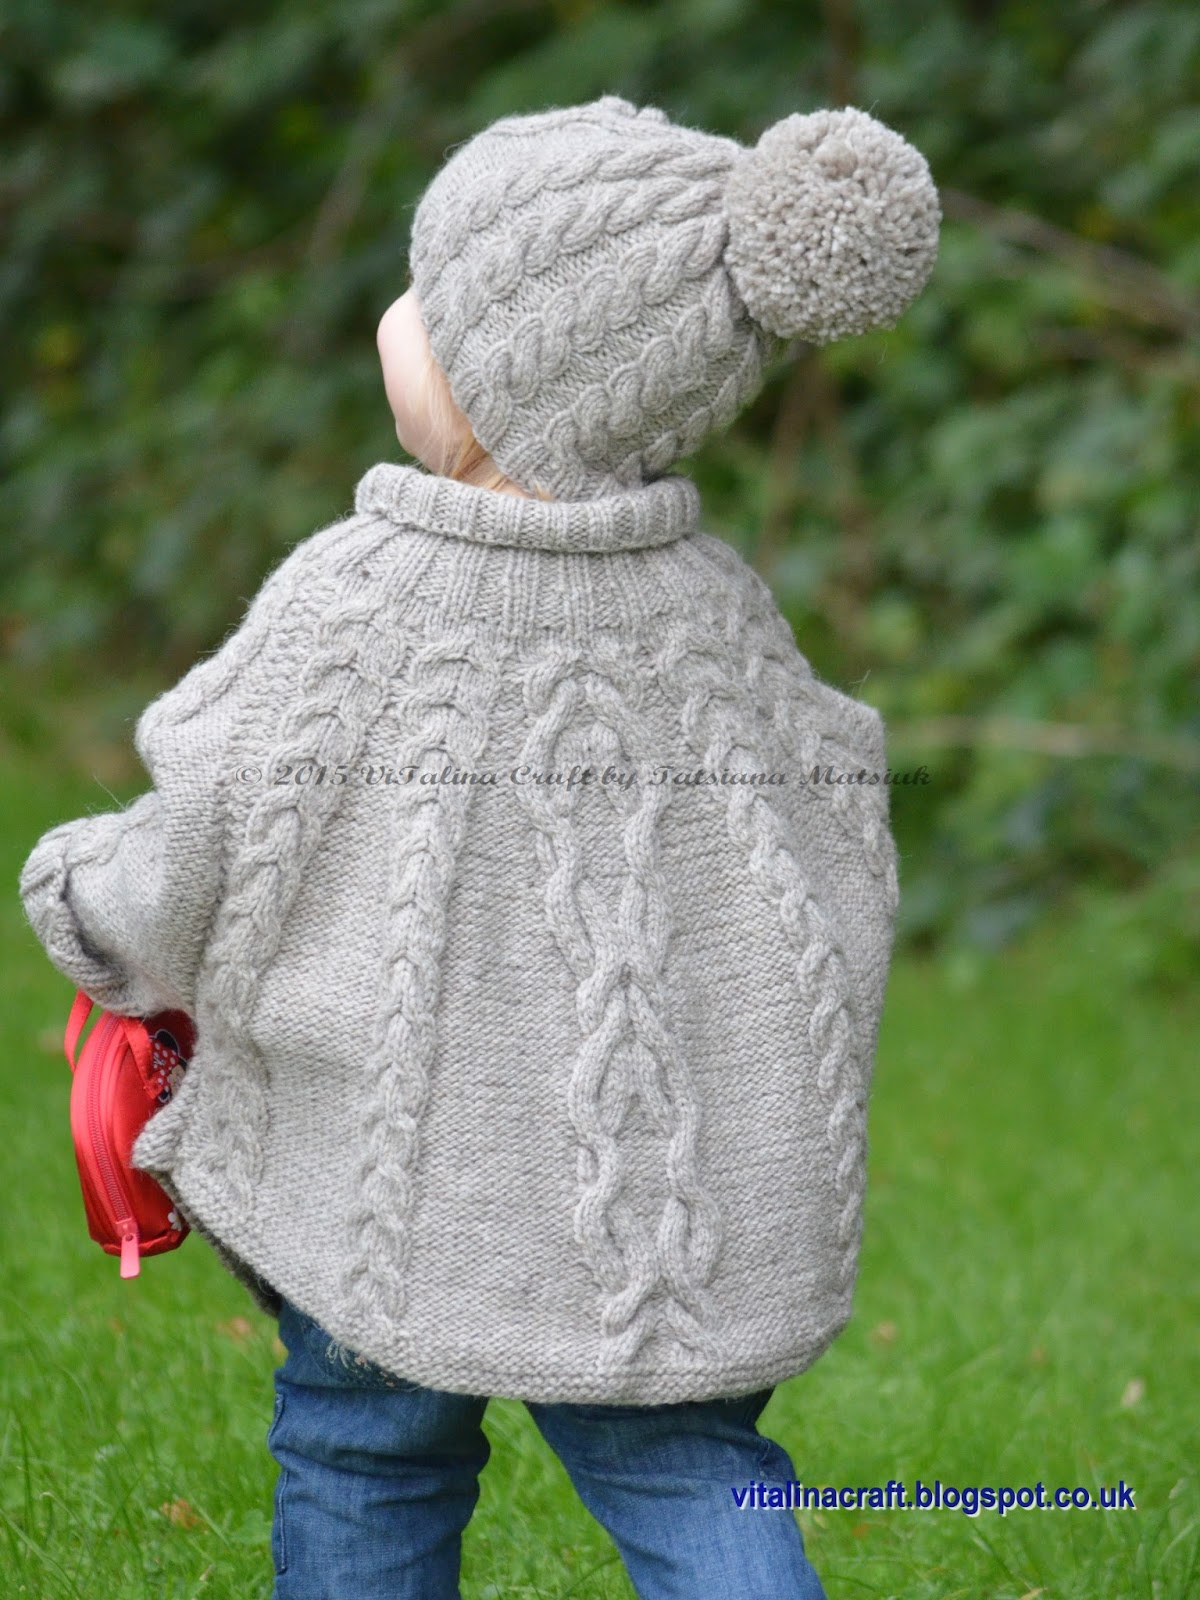 Child S Poncho Knitting Pattern : Knitting pattern temptation poncho and hat set toddler